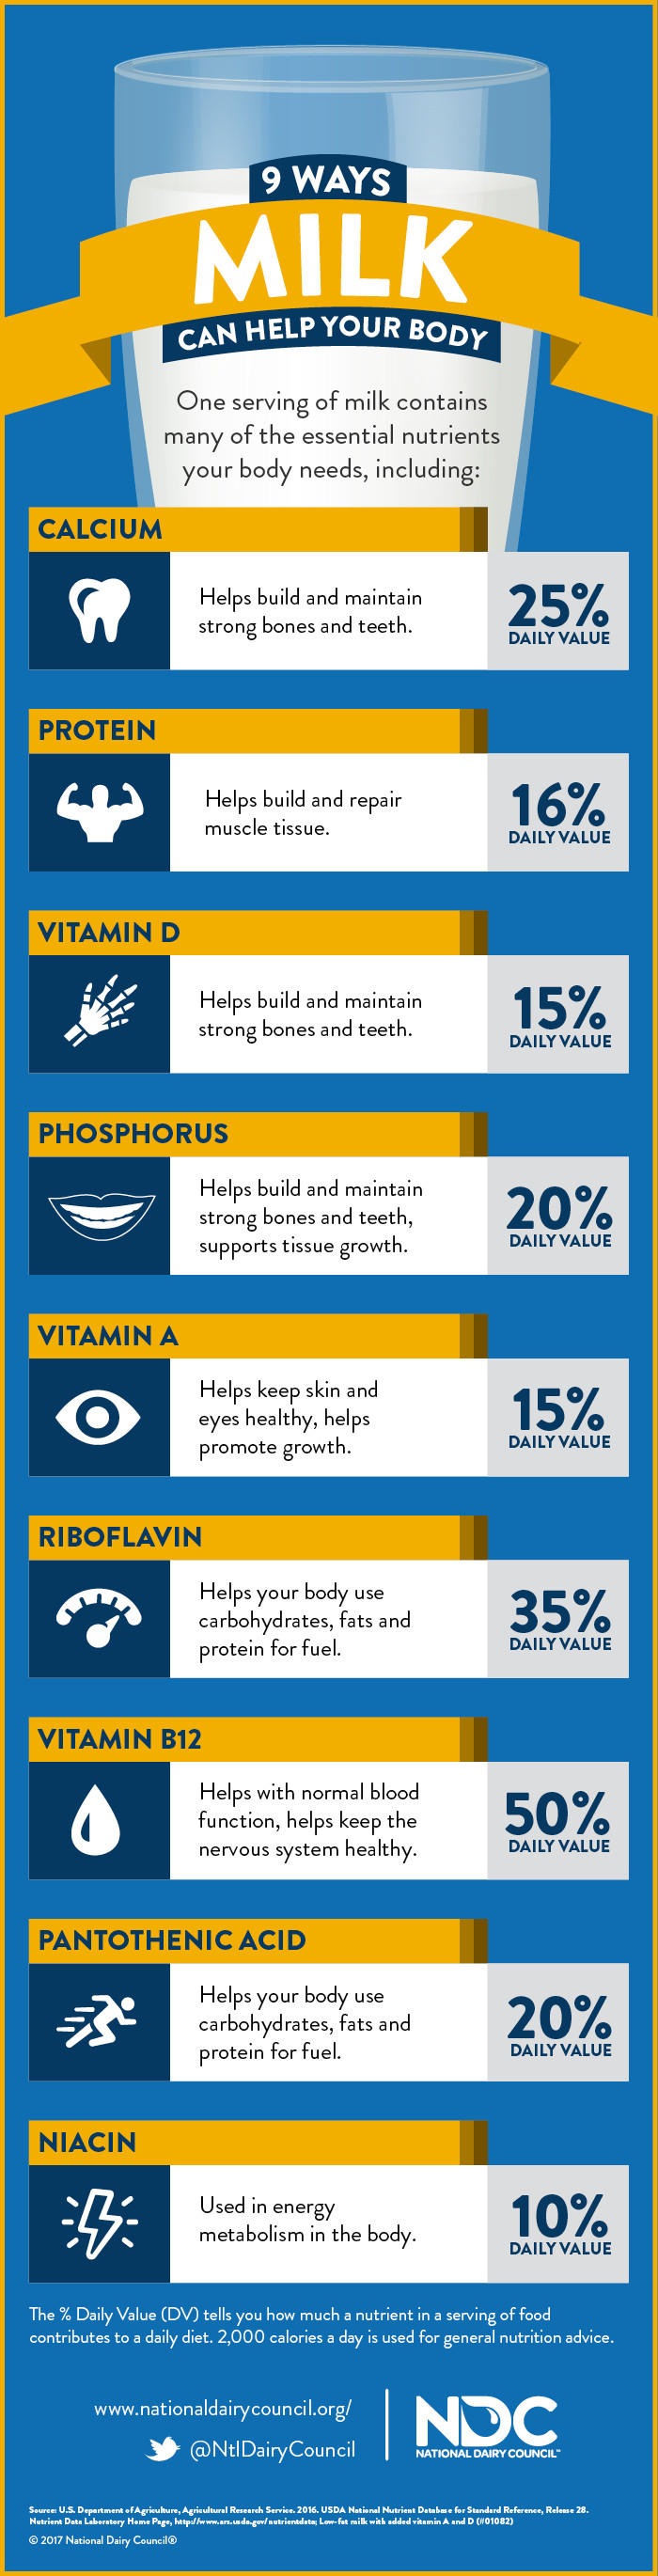 9 Ways Milk Can Help Your Body (Infographic)